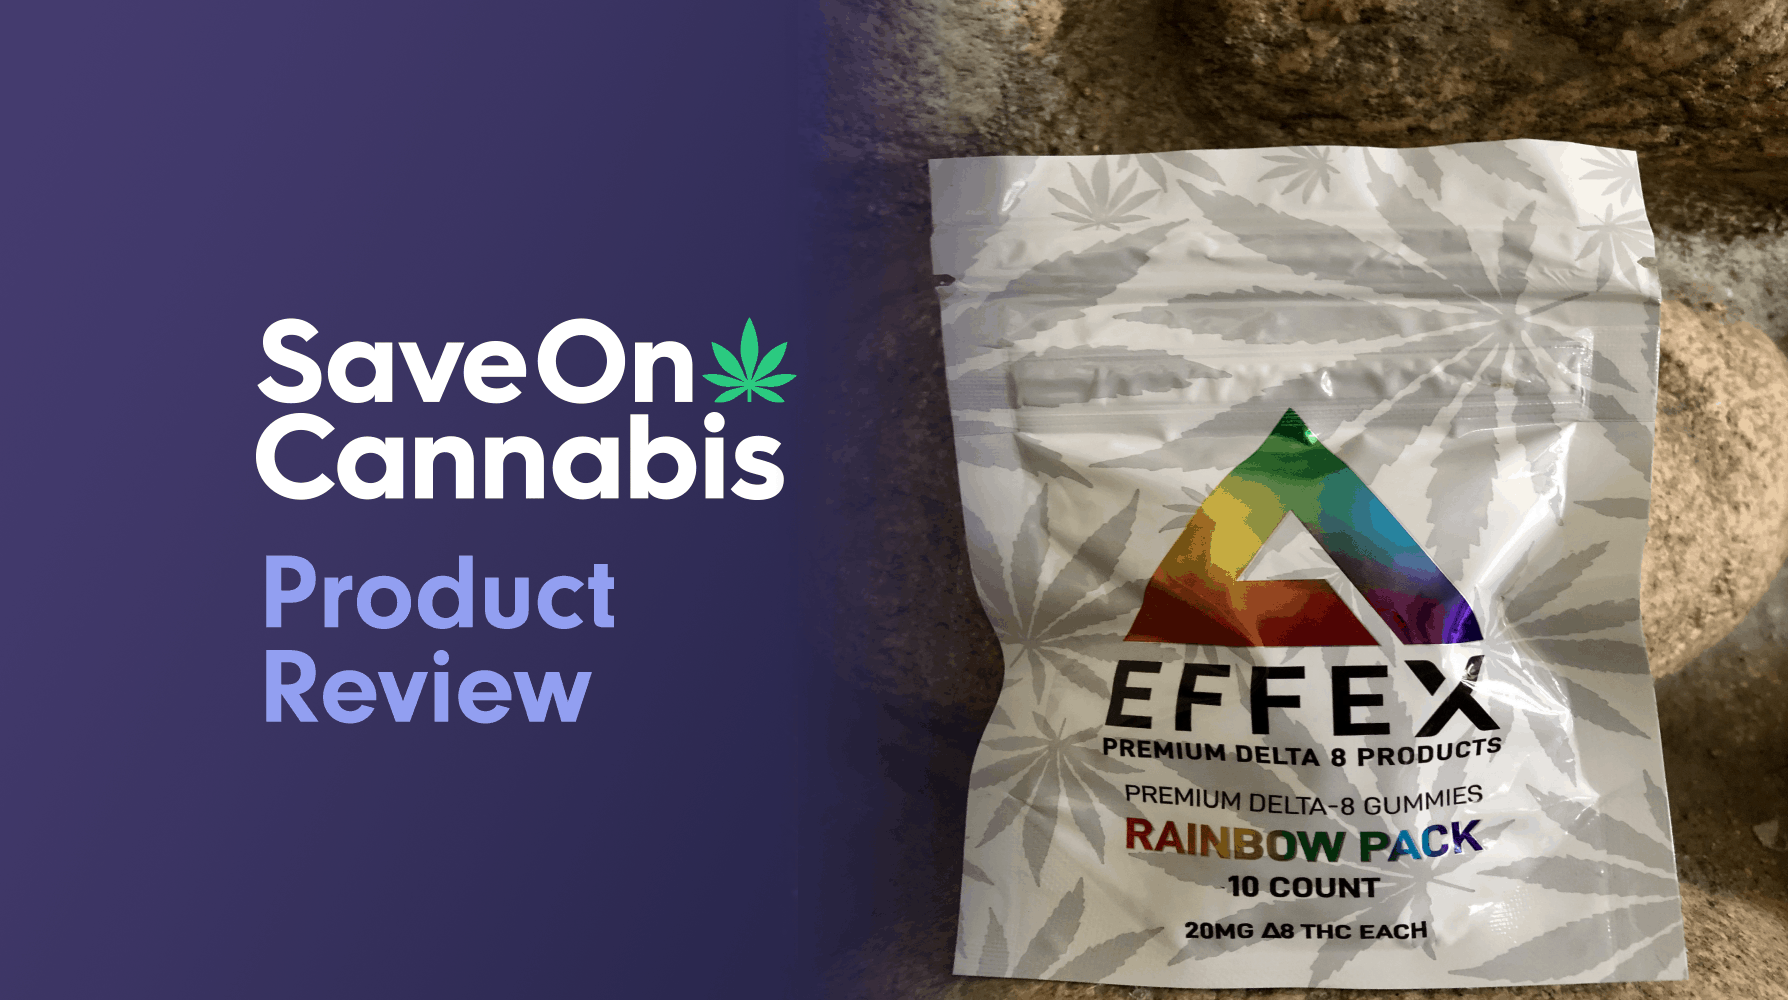 Delta Effex Rainbow Pack Premium Delta 8 THC Gummies Save On Cannabis Review Website